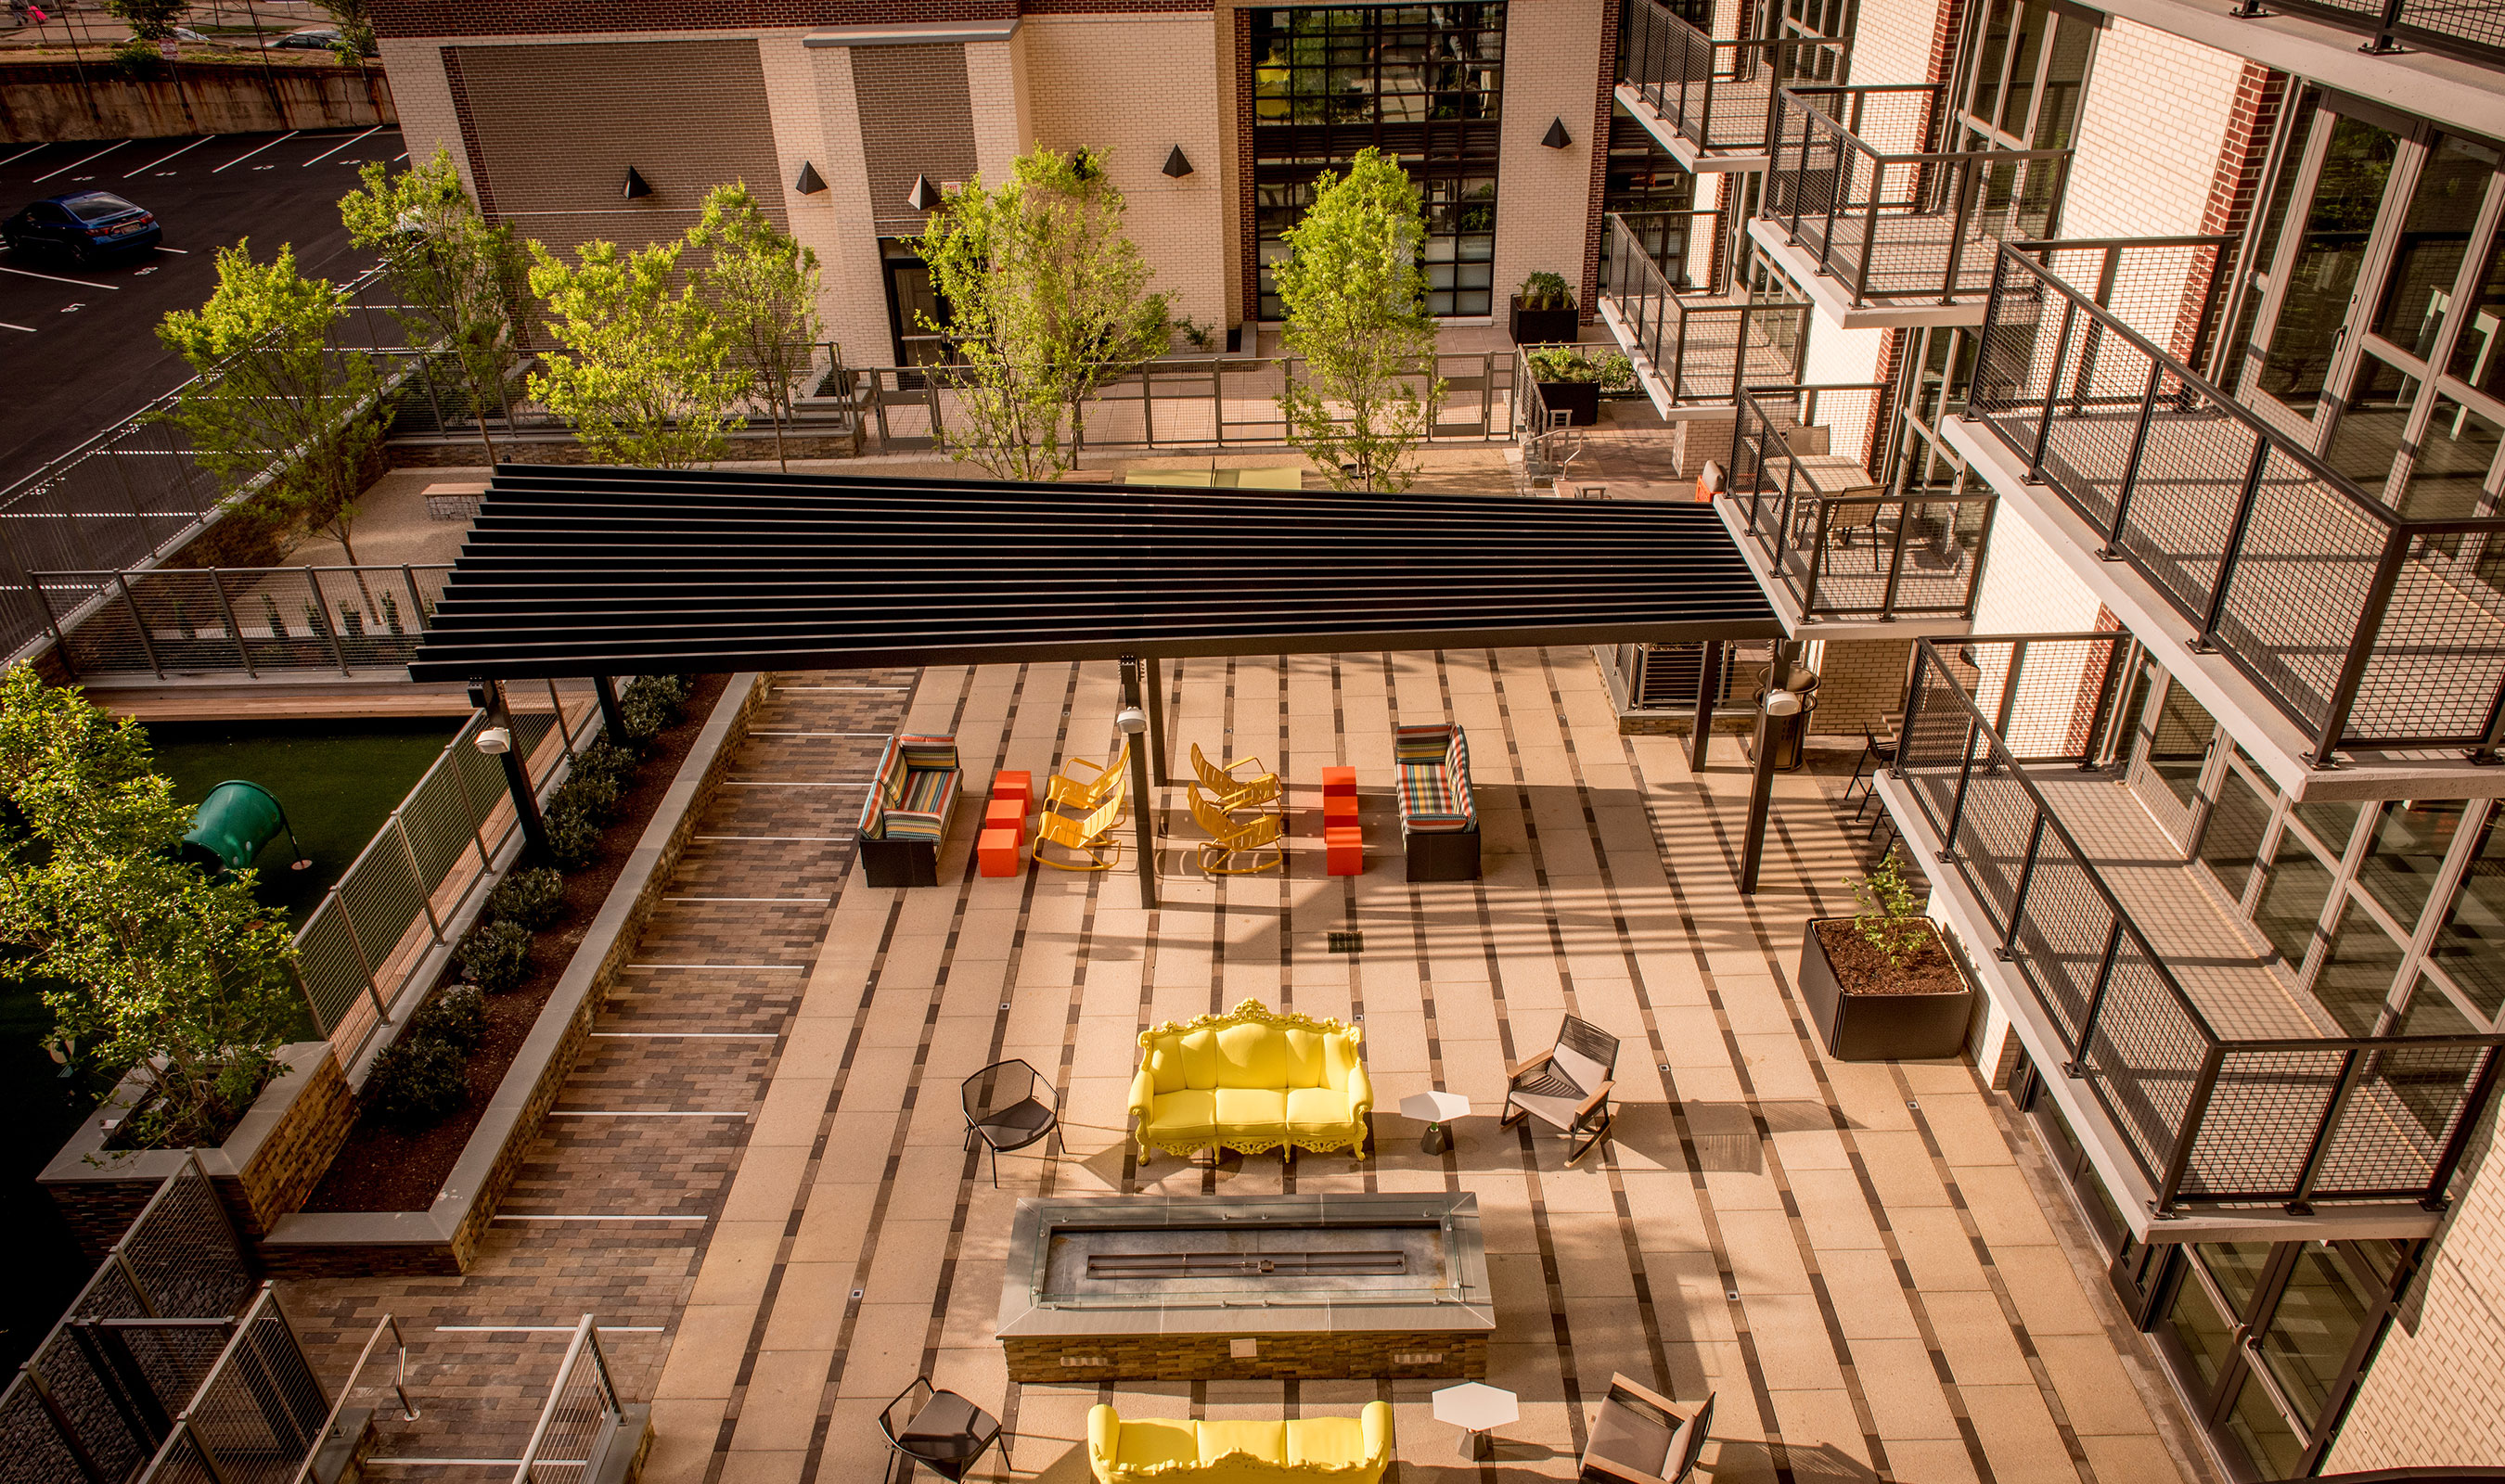 Banker Wire's L-62 and LZ-11 woven wire mesh used on the balconies, railings, and pet park enclosure of AVA NoMa.